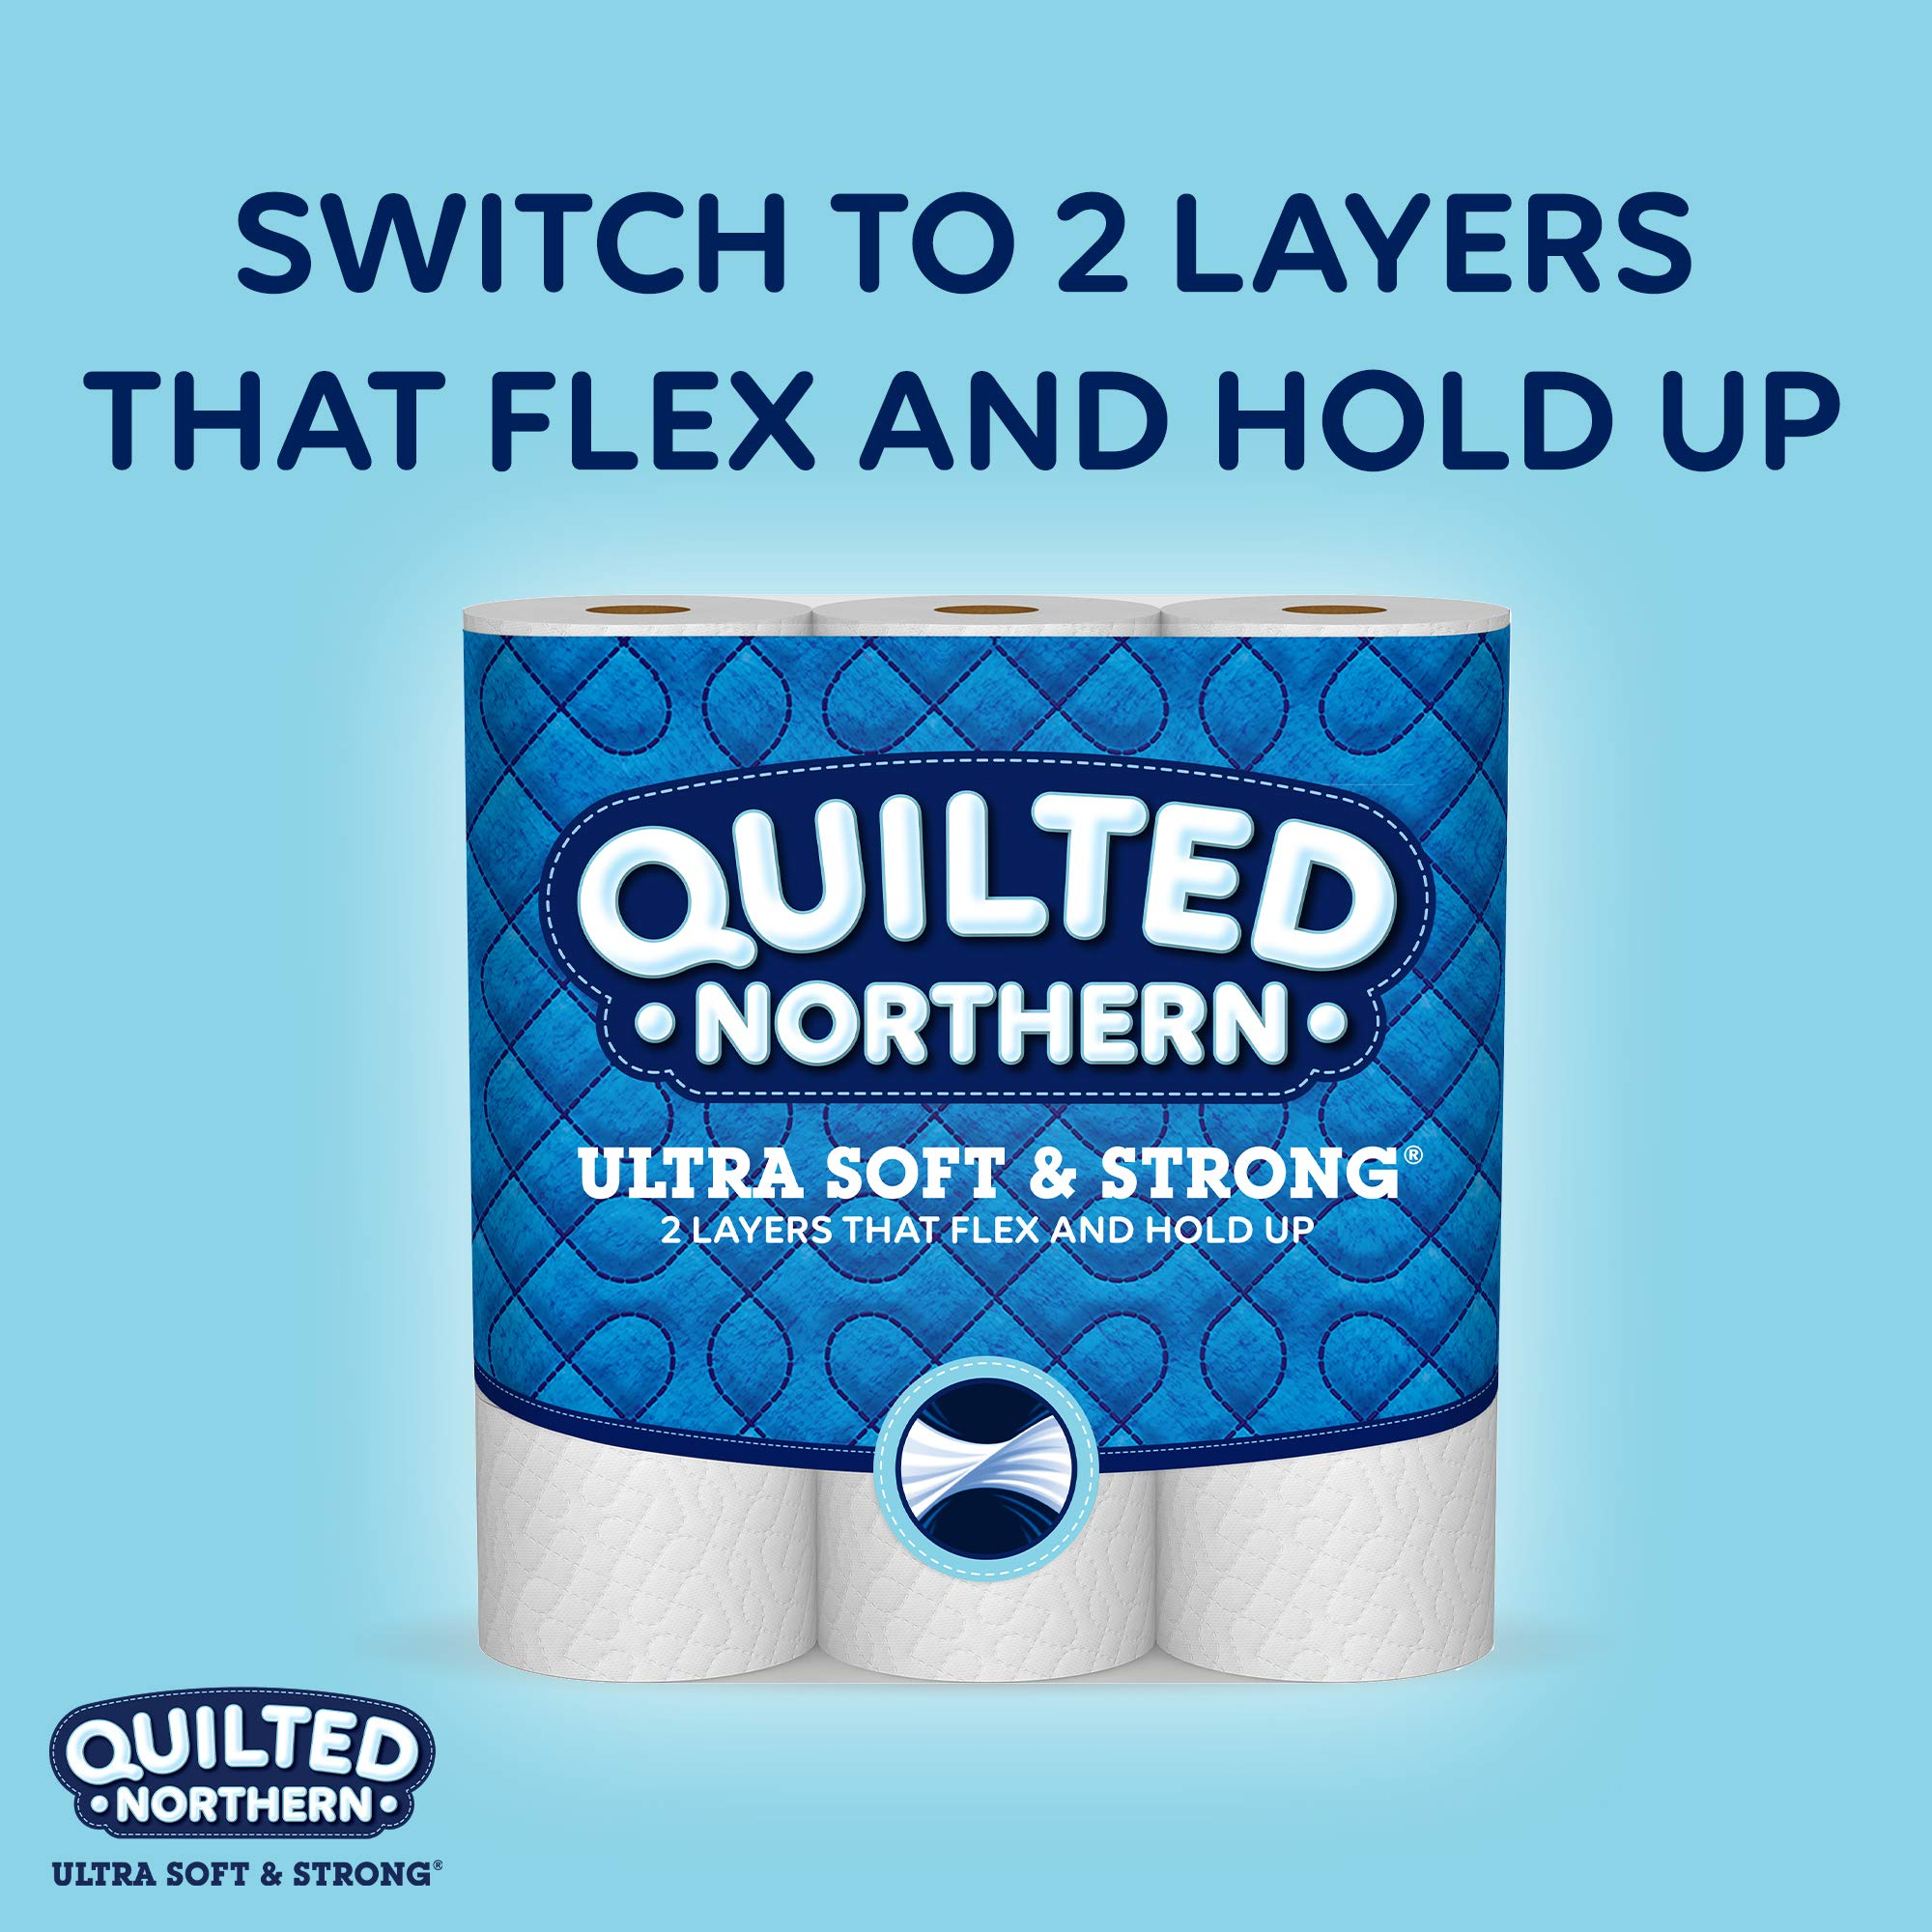 Quilted Northern Ultra Soft & Strong Toilet Paper, 48 Double Rolls, 164 2-Ply Sheets Per Roll by Quilted Northern (Image #10)